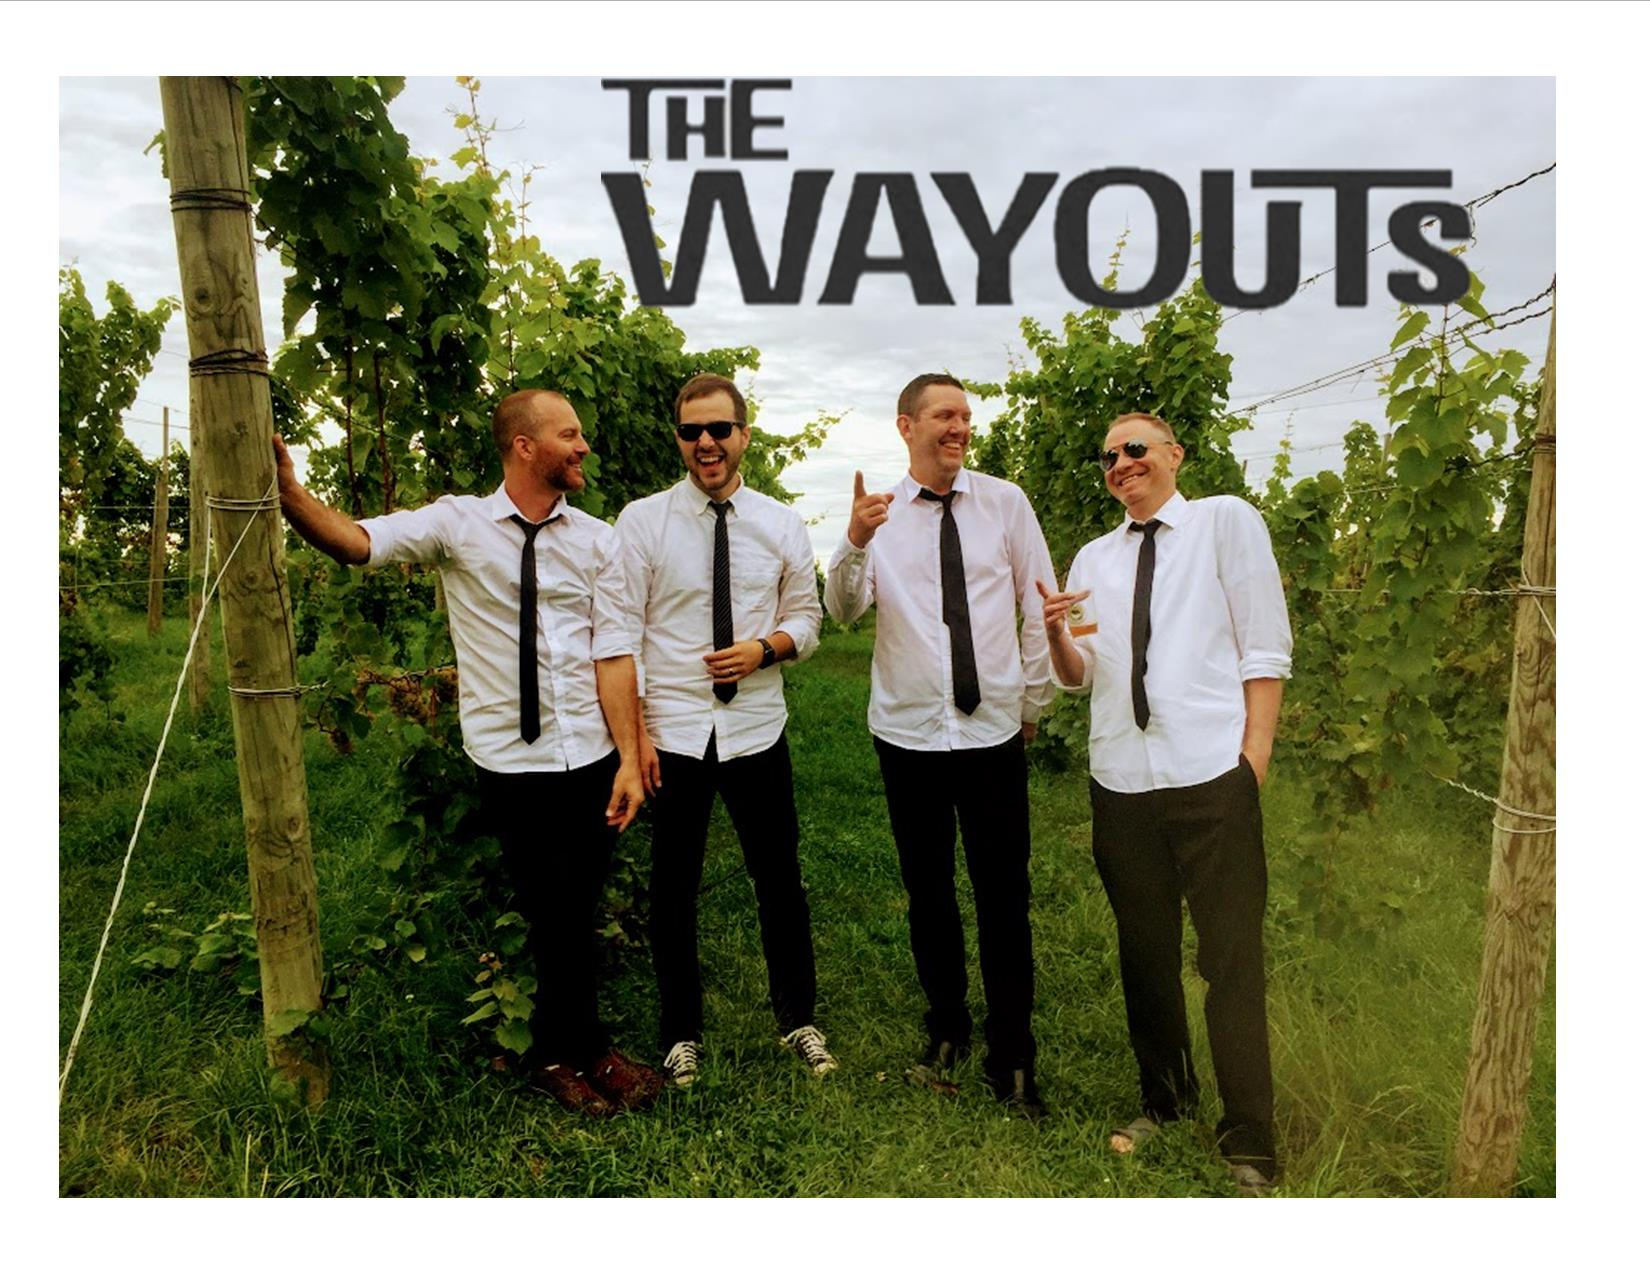 Cancelled: The Wayouts